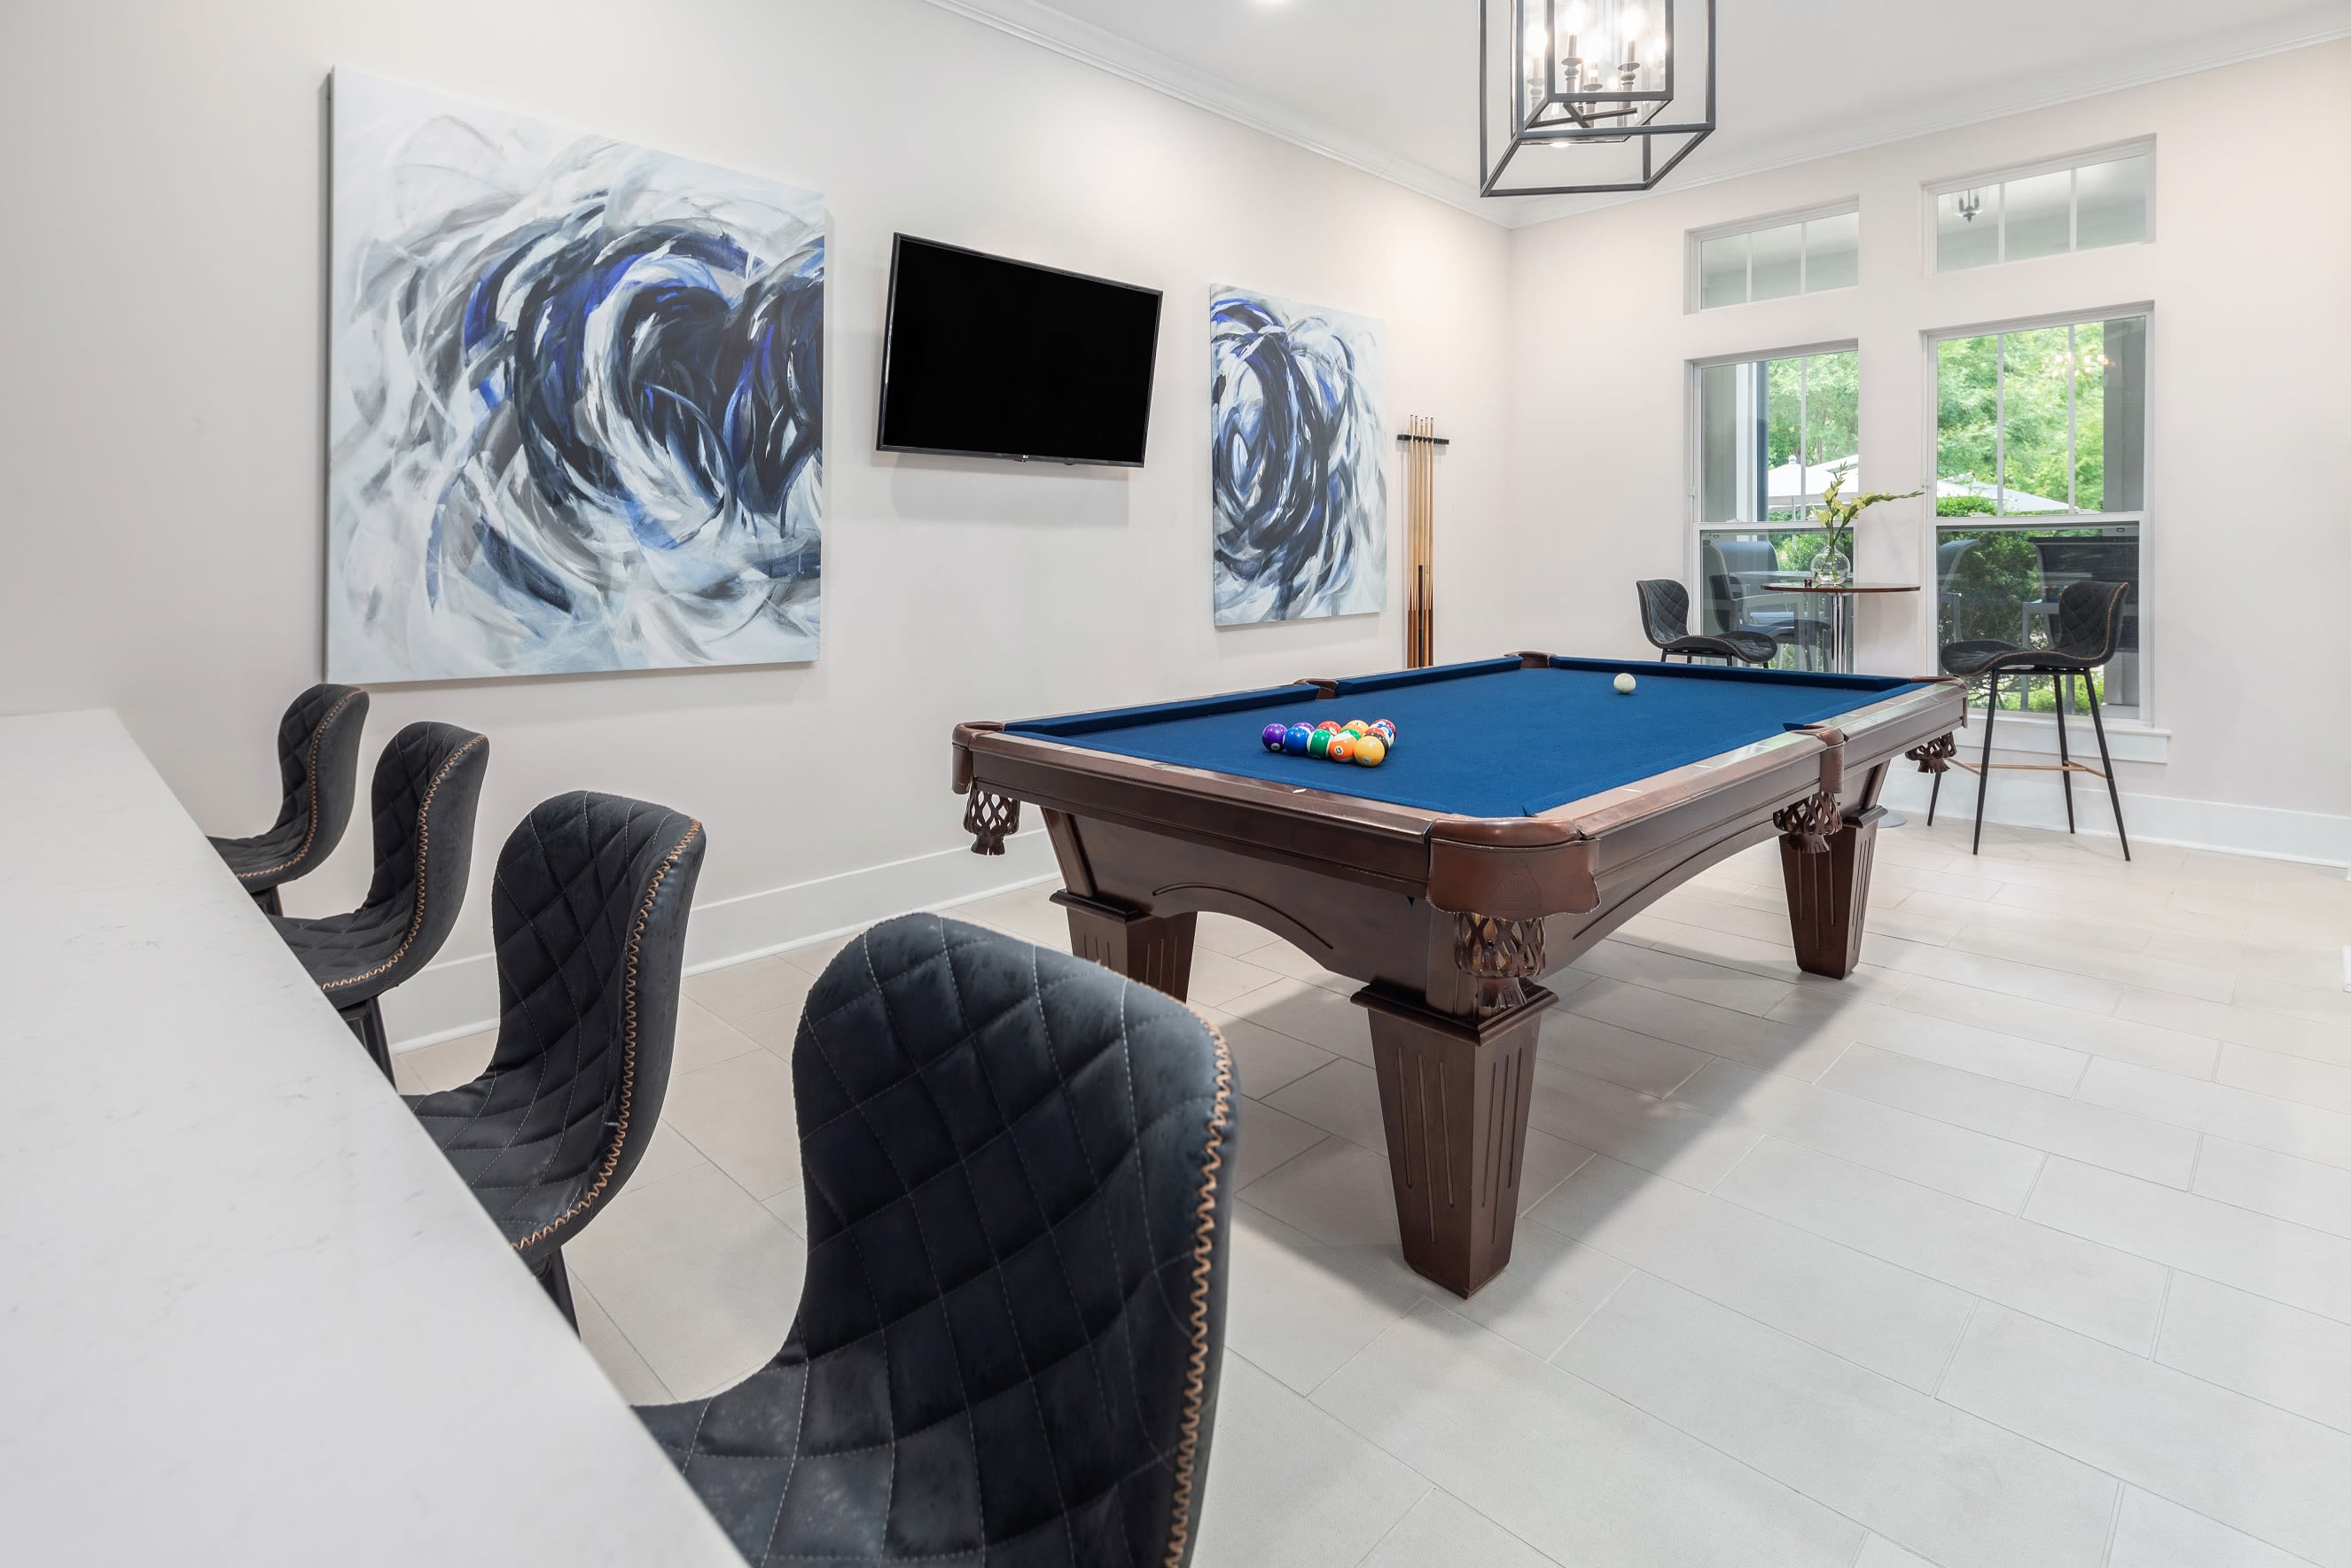 View virtual tour for the billiards room at The District in Charlotte, North Carolina